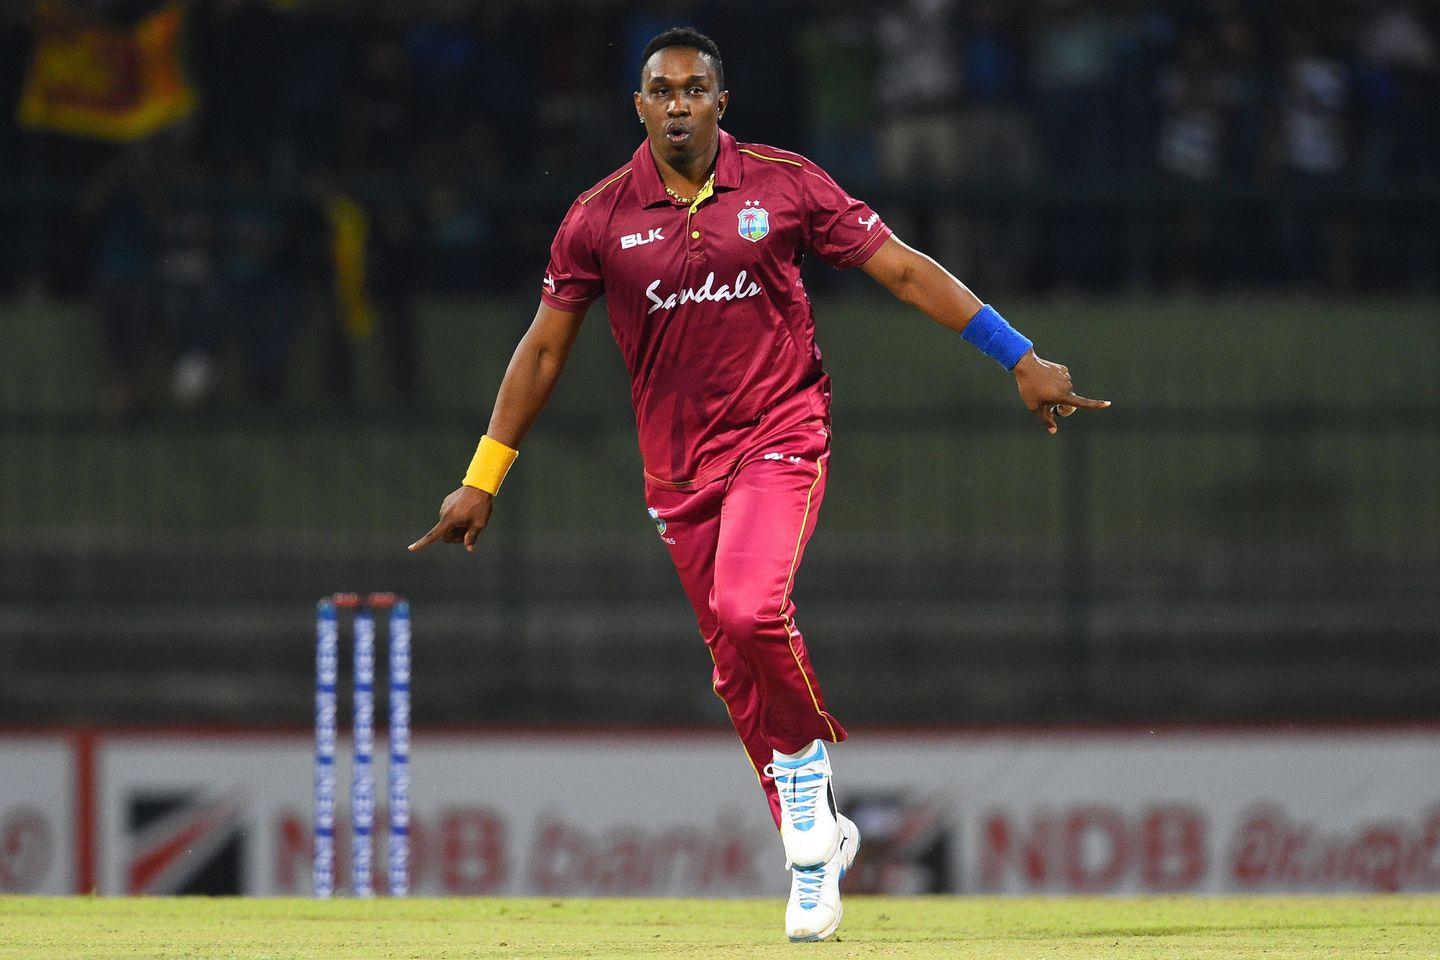 Dwayne Bravo is one of the world's most talented players